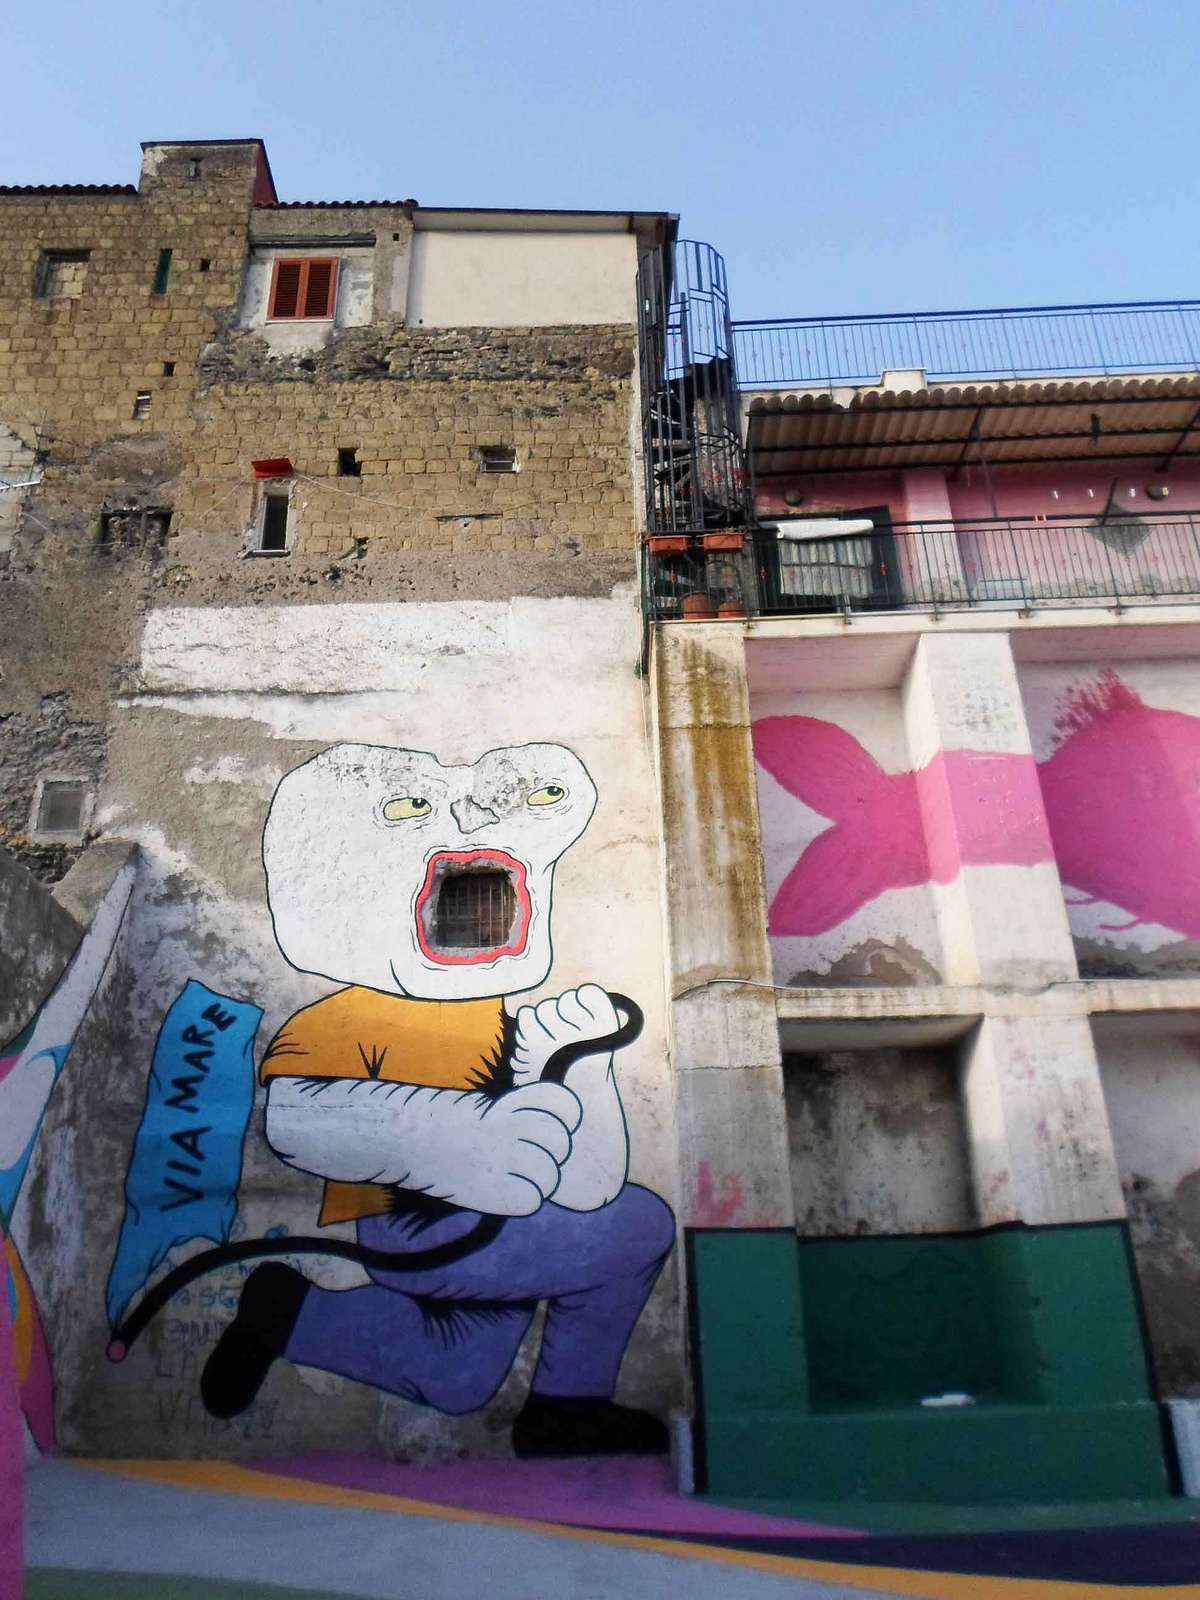 diego-miedo-new-murals-in-napoli-and-ercolano-06